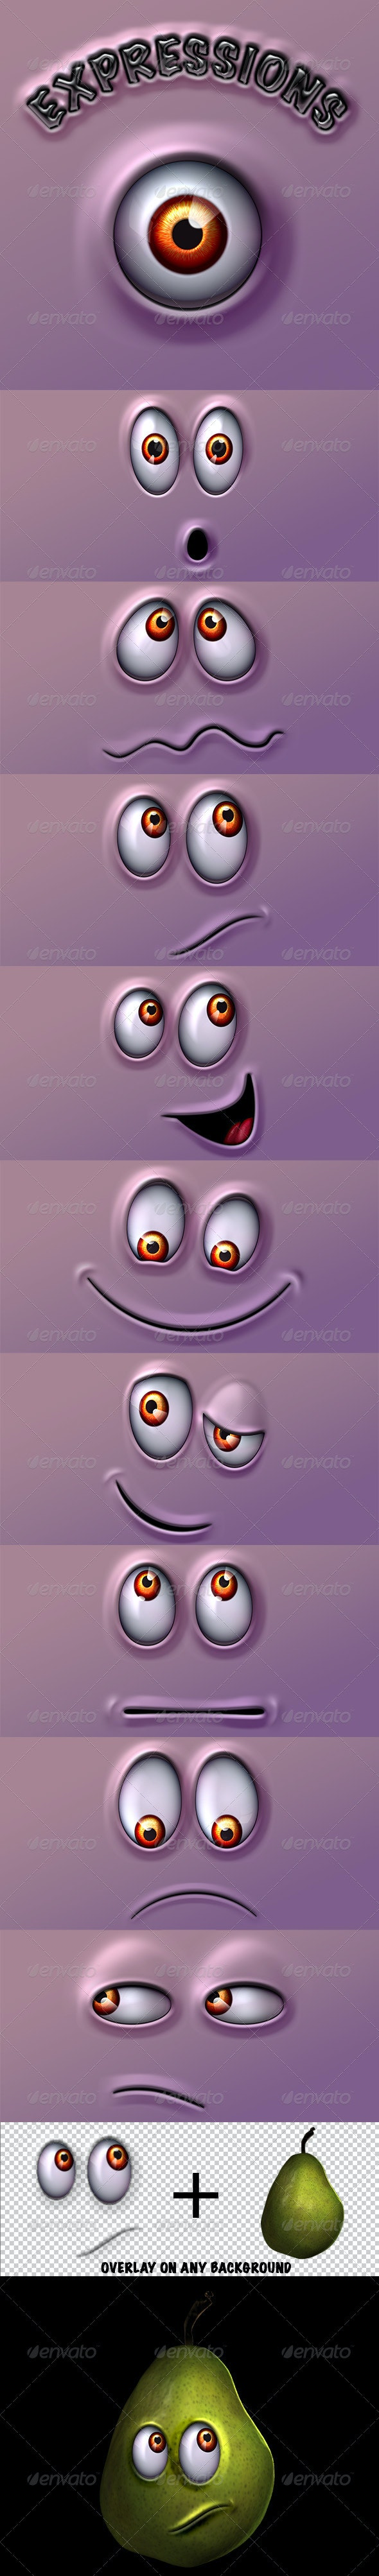 Character Expressions Pack - Characters Illustrations